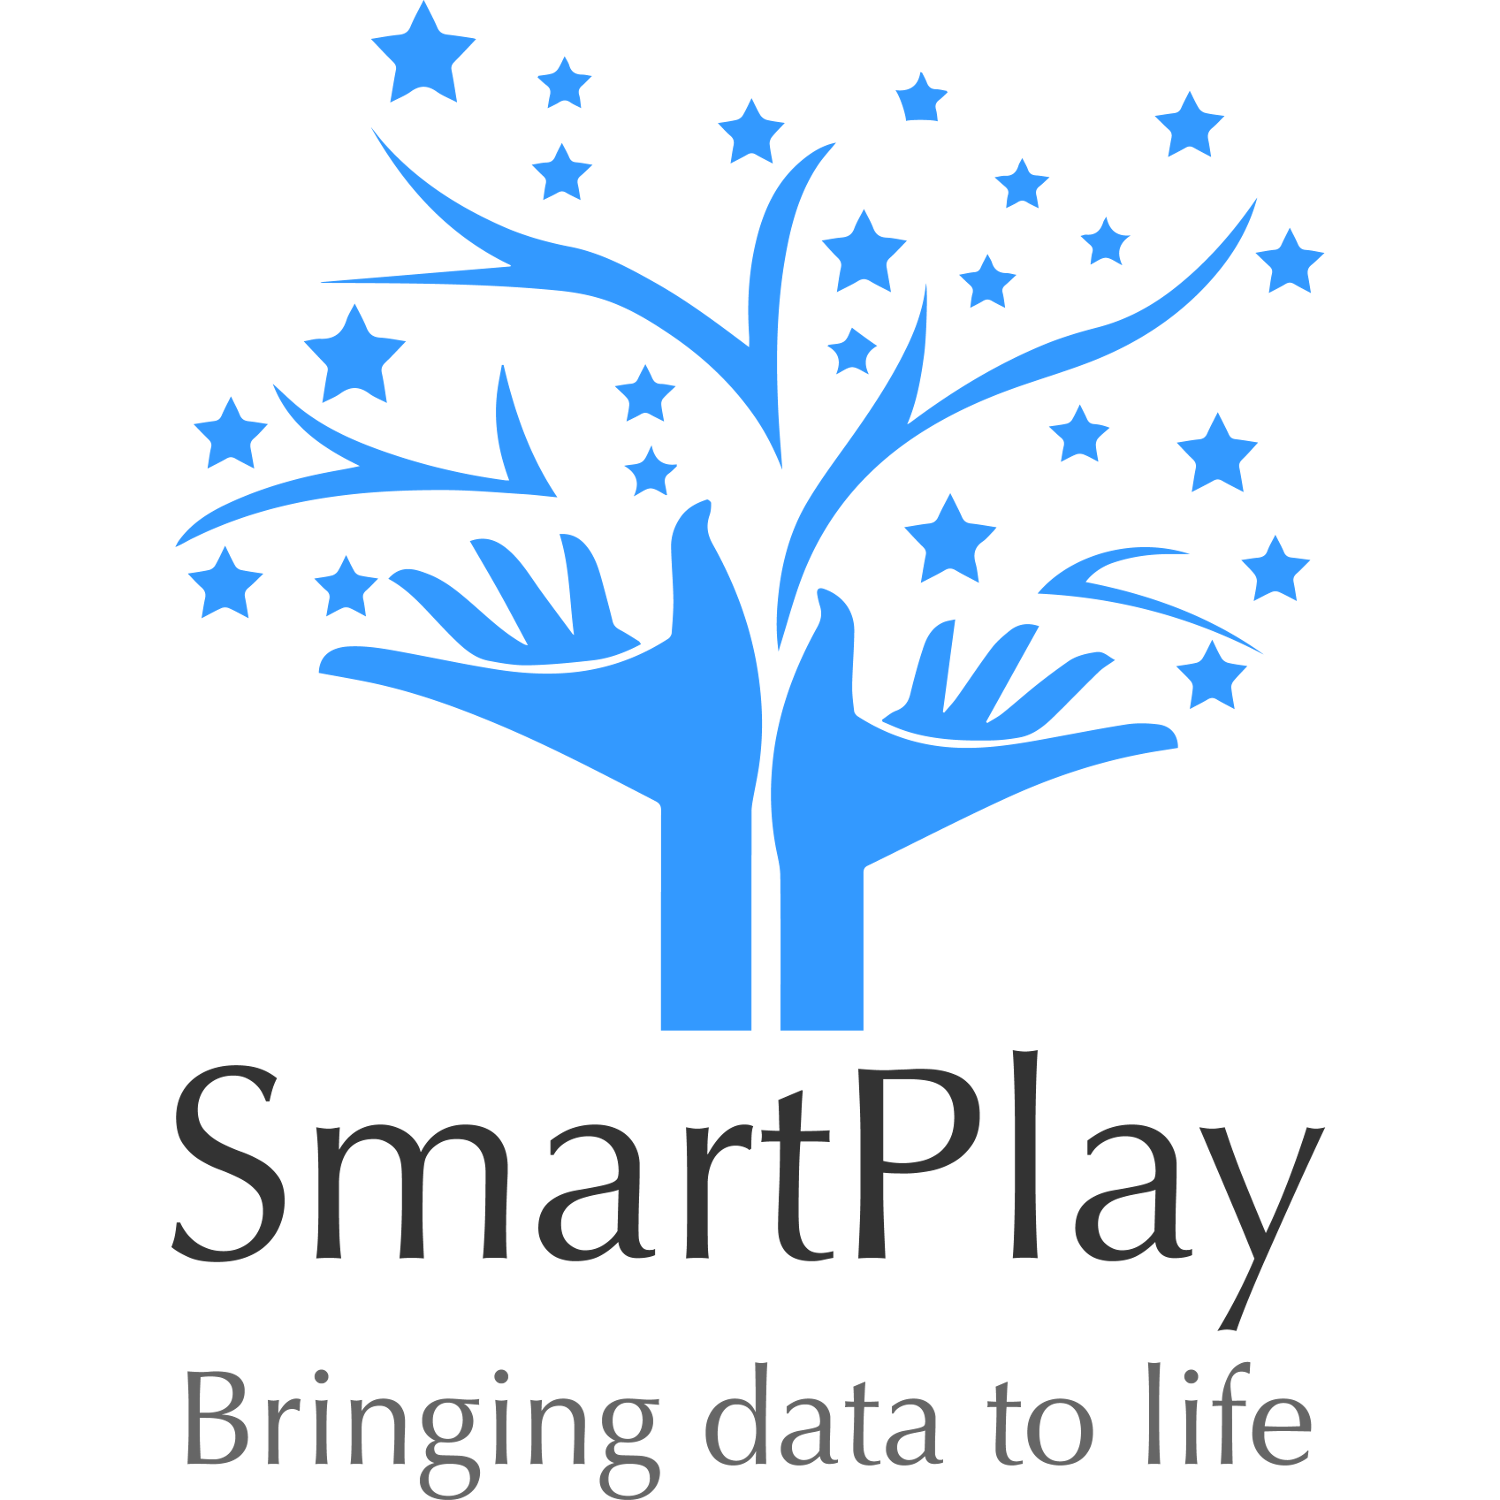 SmartPlay - We're working with Fact Nexus, Lead Agilty, UON's School of Creative Industries, and Quipu Design to inspire a community driven effort to make data accessible through digital play. We want to enable Newcastle citizens to shape their own smart city.Find out more about this project.